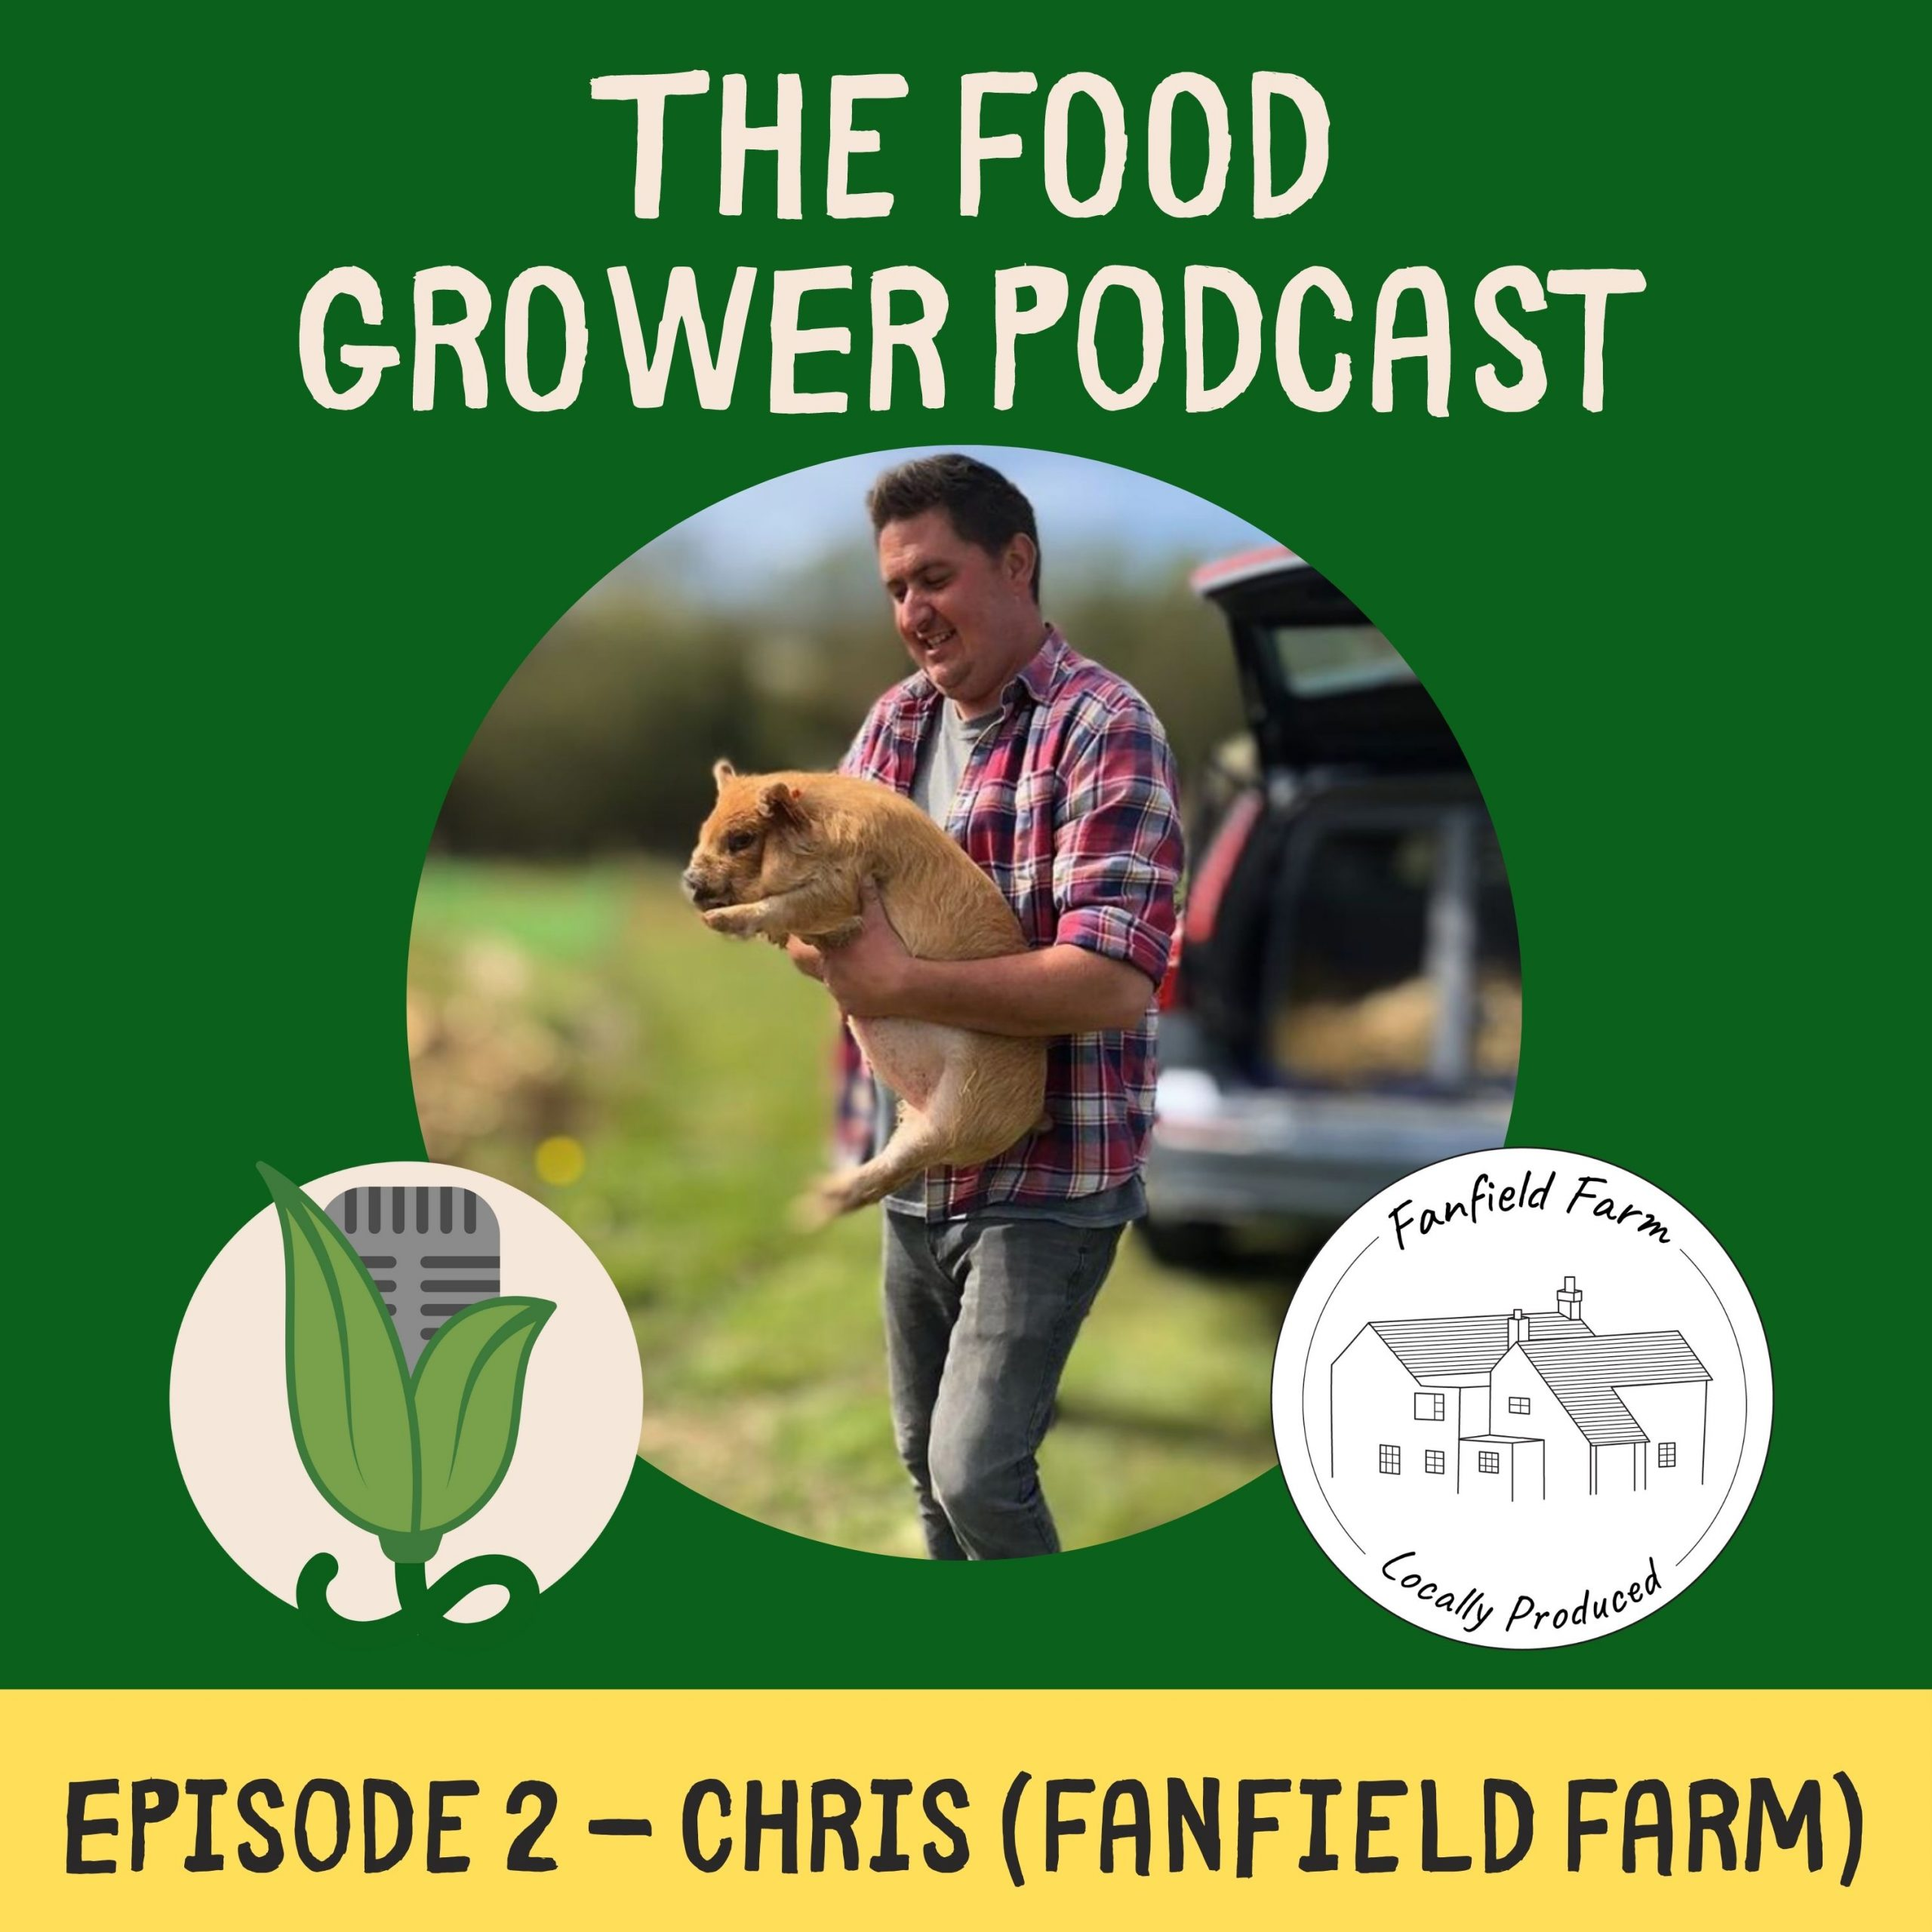 Artwork for podcast The Food Grower Podcast